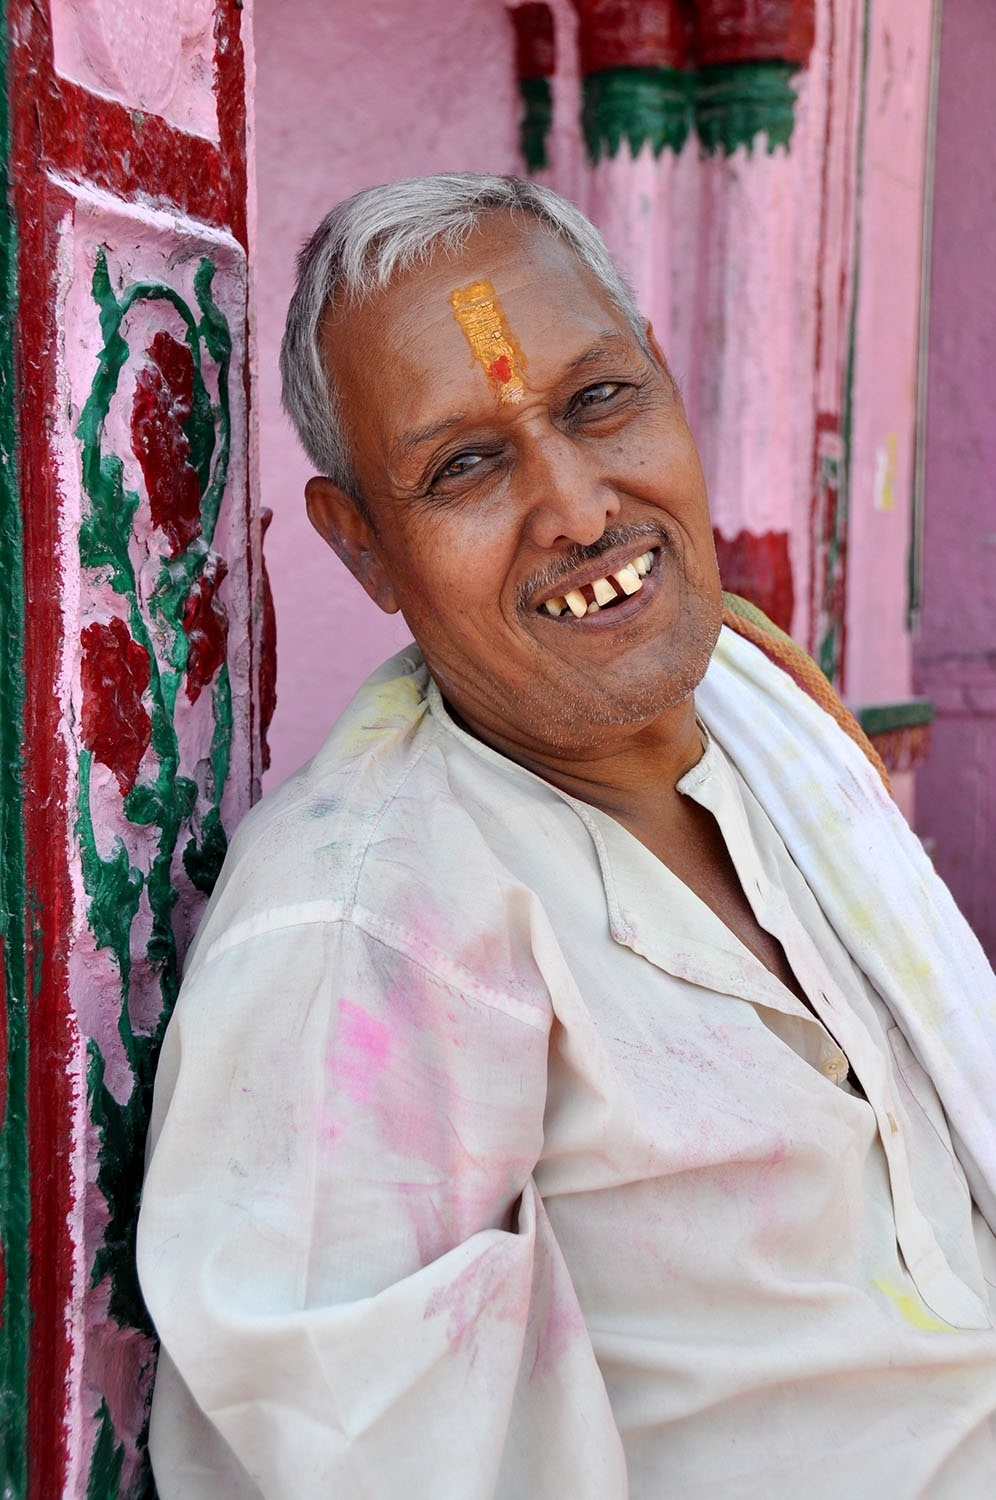 We sat down to take a break during the Holi Hai festivities in India, and had a wonderful conversation with this man. He wanted us to know that the message of Holi is to spread happiness throughout the world. He then asked if I could take a picture of him so I would remember his message. So sweet!